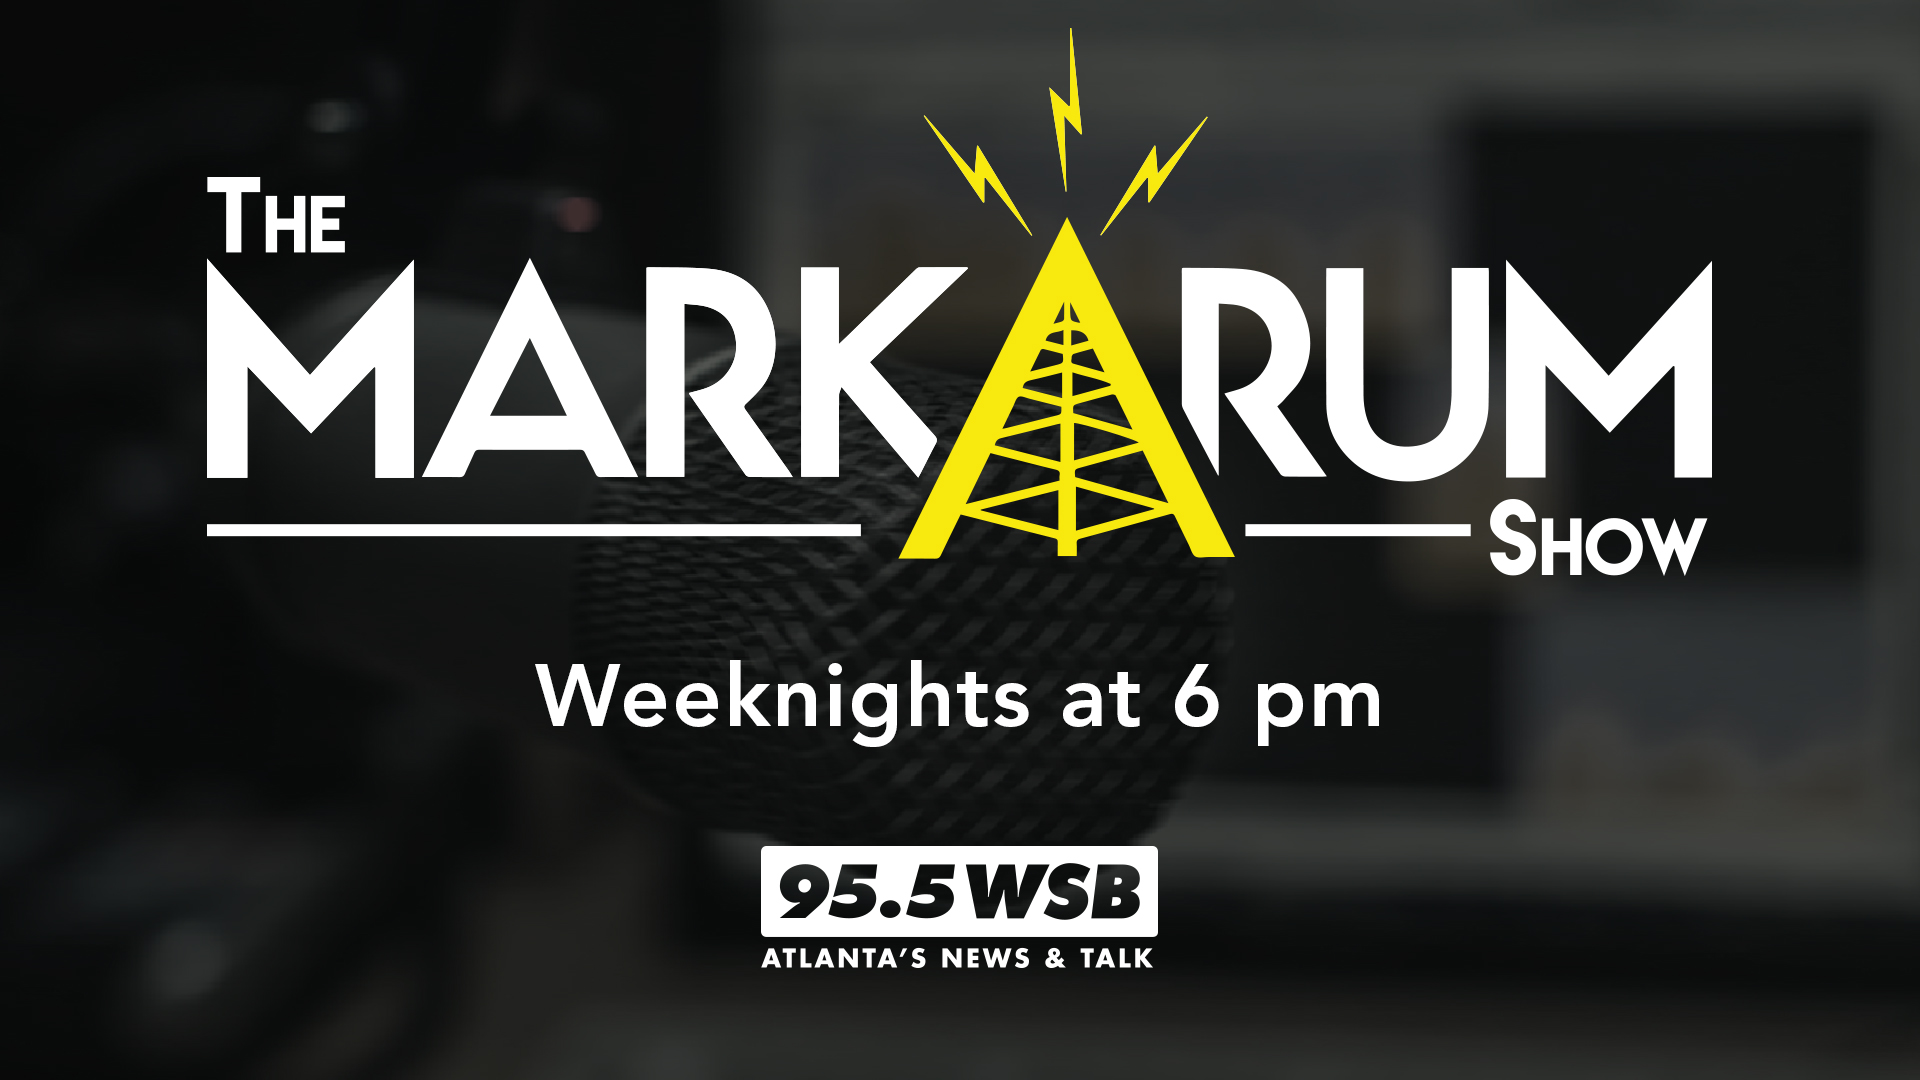 The Mark Arum Show